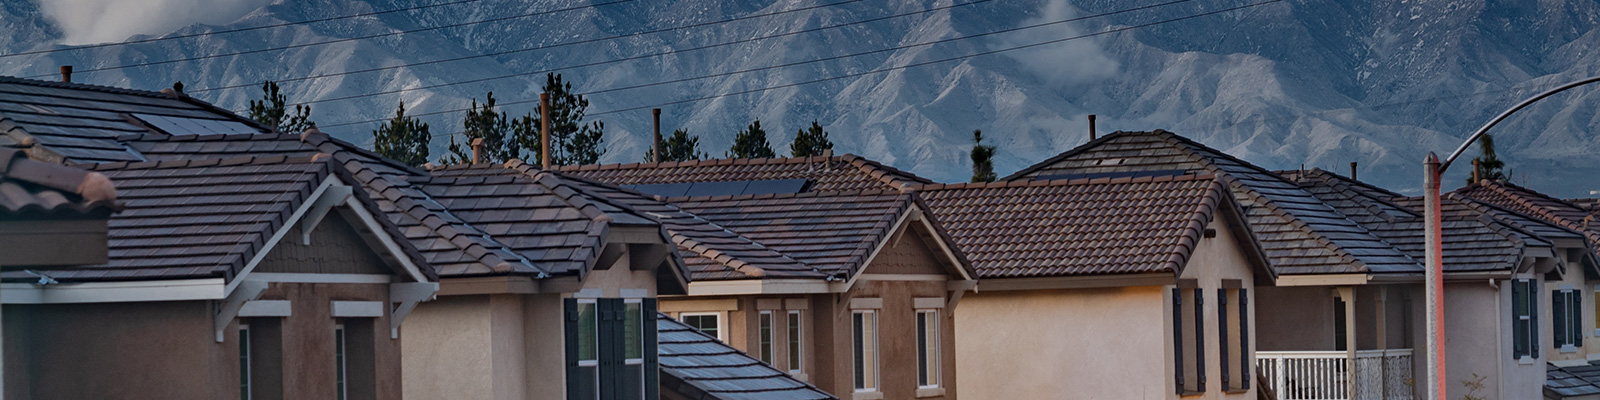 Roofs by the mountainside